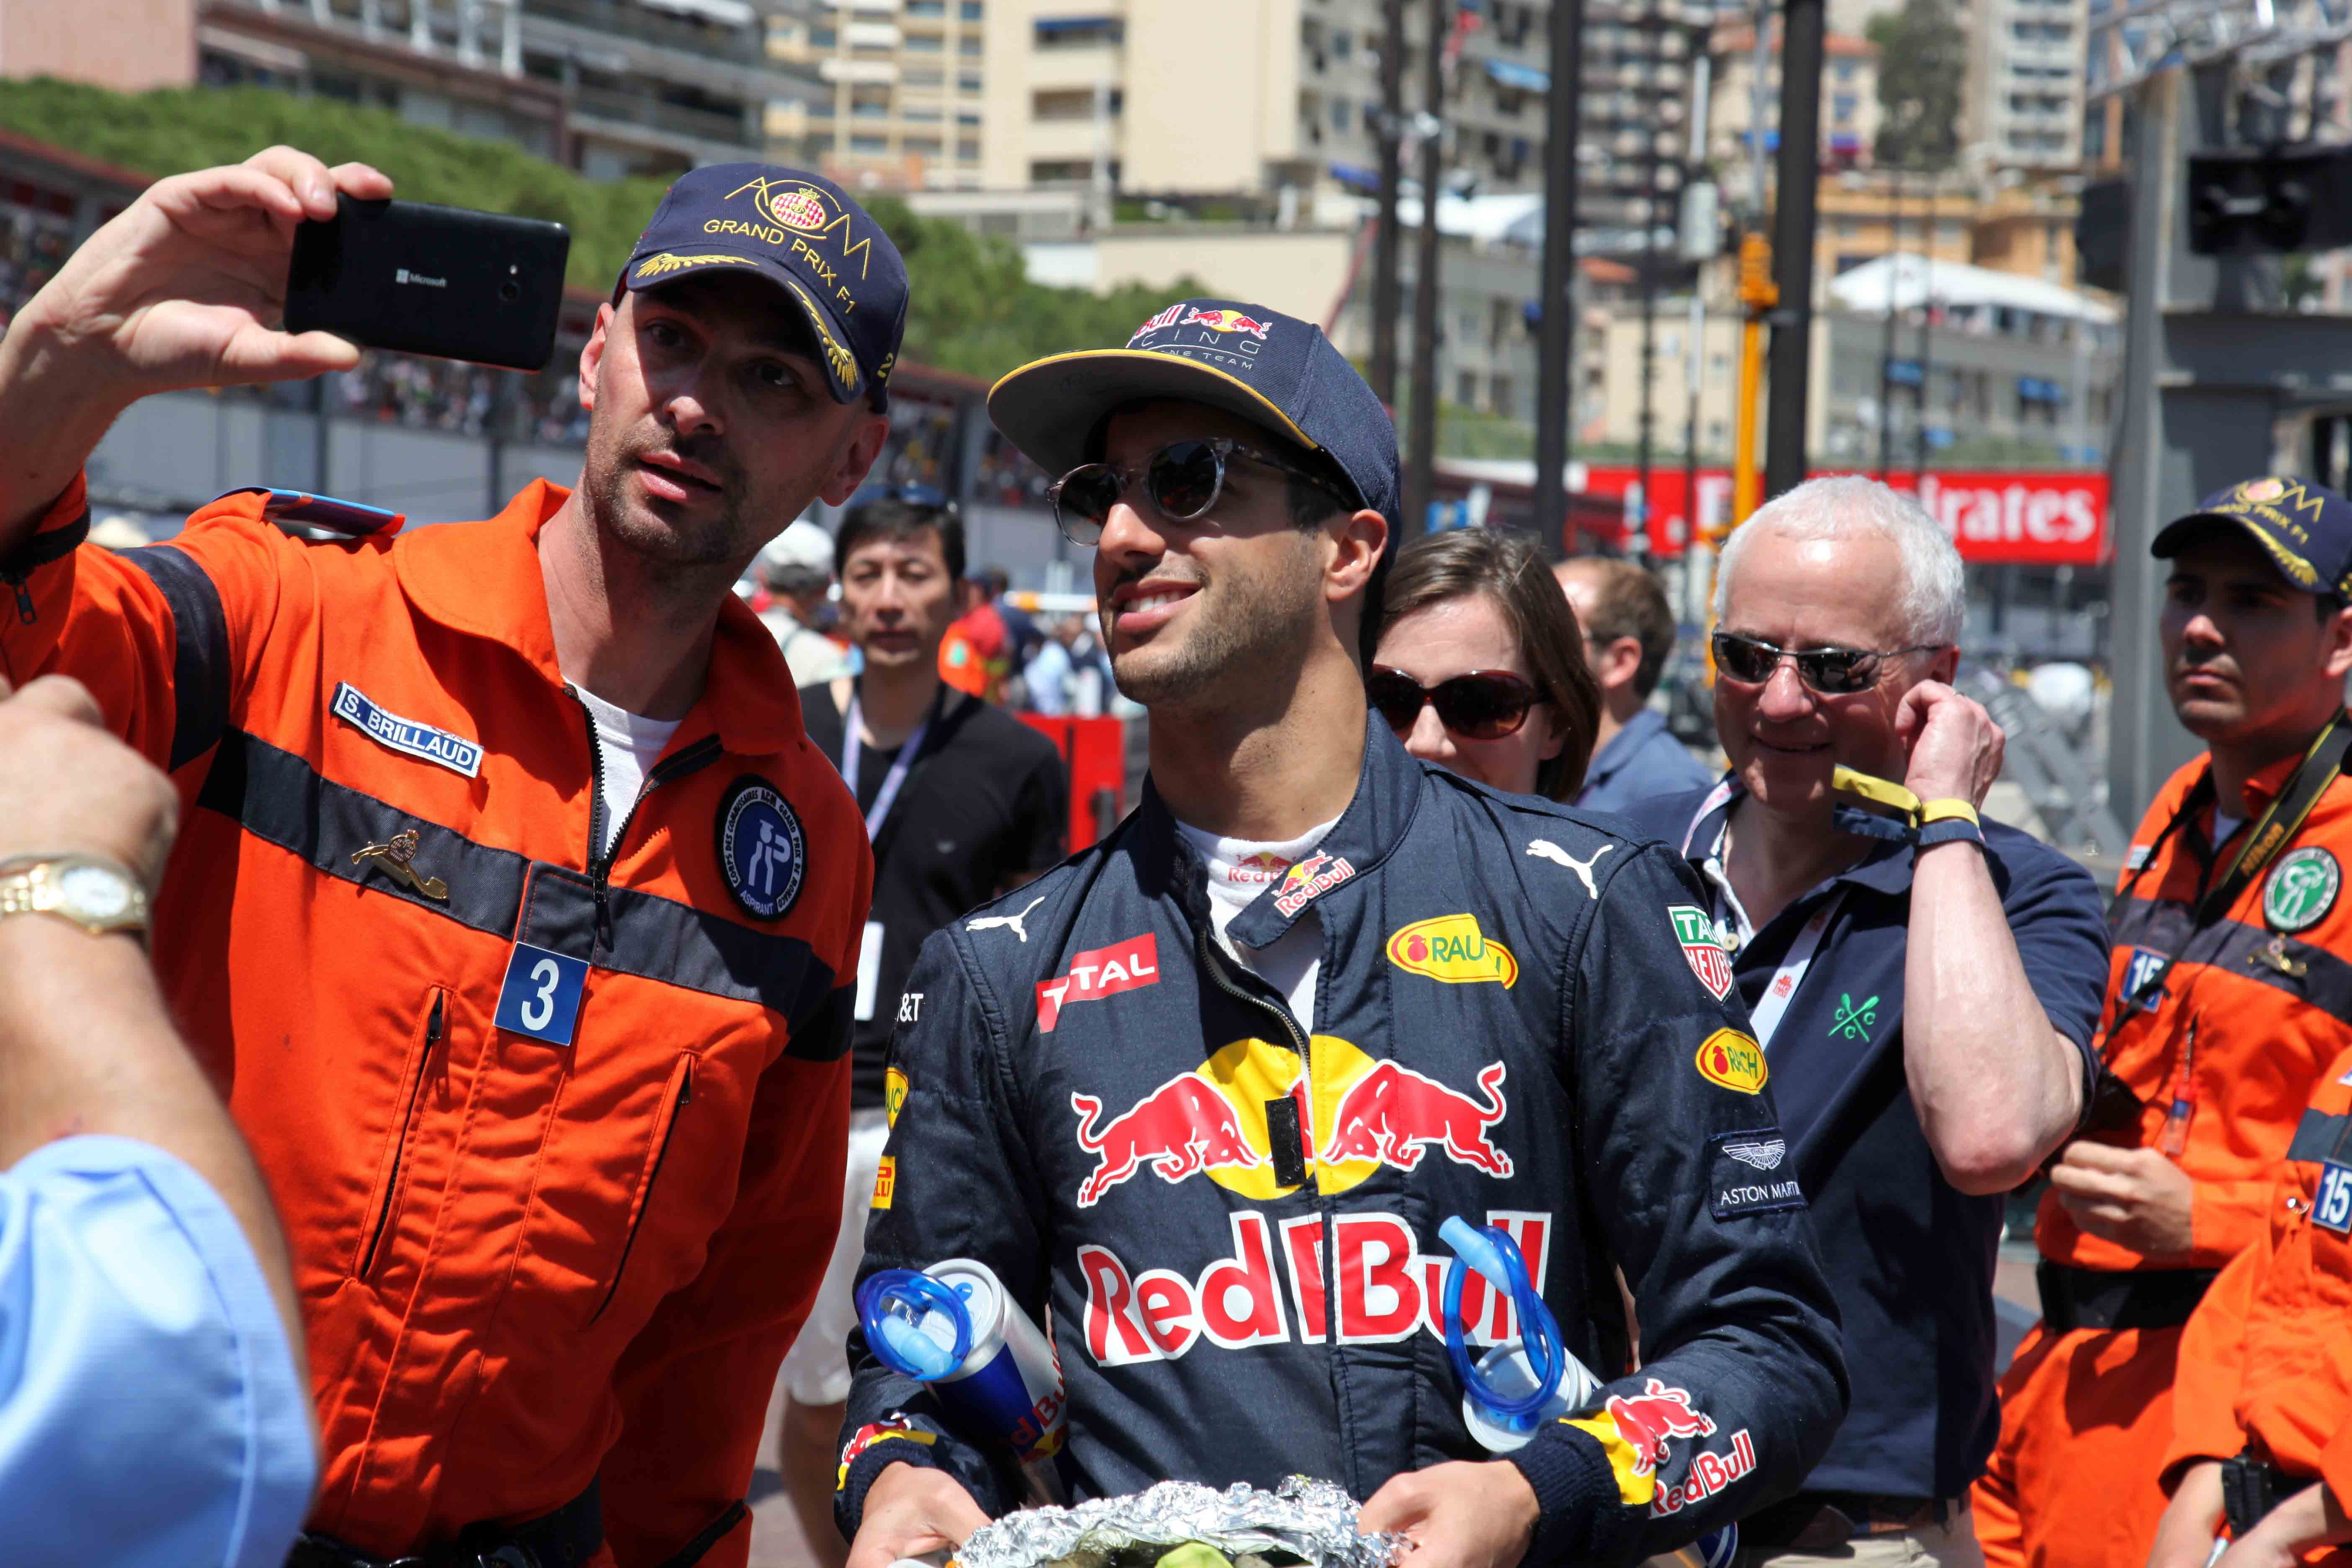 Red Bull Racing driver, Daniel Ricciardo.  Photo Report: Behind The Scenes At The Monaco Grand Prix 2016 With TAG Heuer CEO Jean-Claude Biver Photo Report: Behind The Scenes At The Monaco Grand Prix 2016 With TAG Heuer CEO Jean-Claude Biver IMG 0614